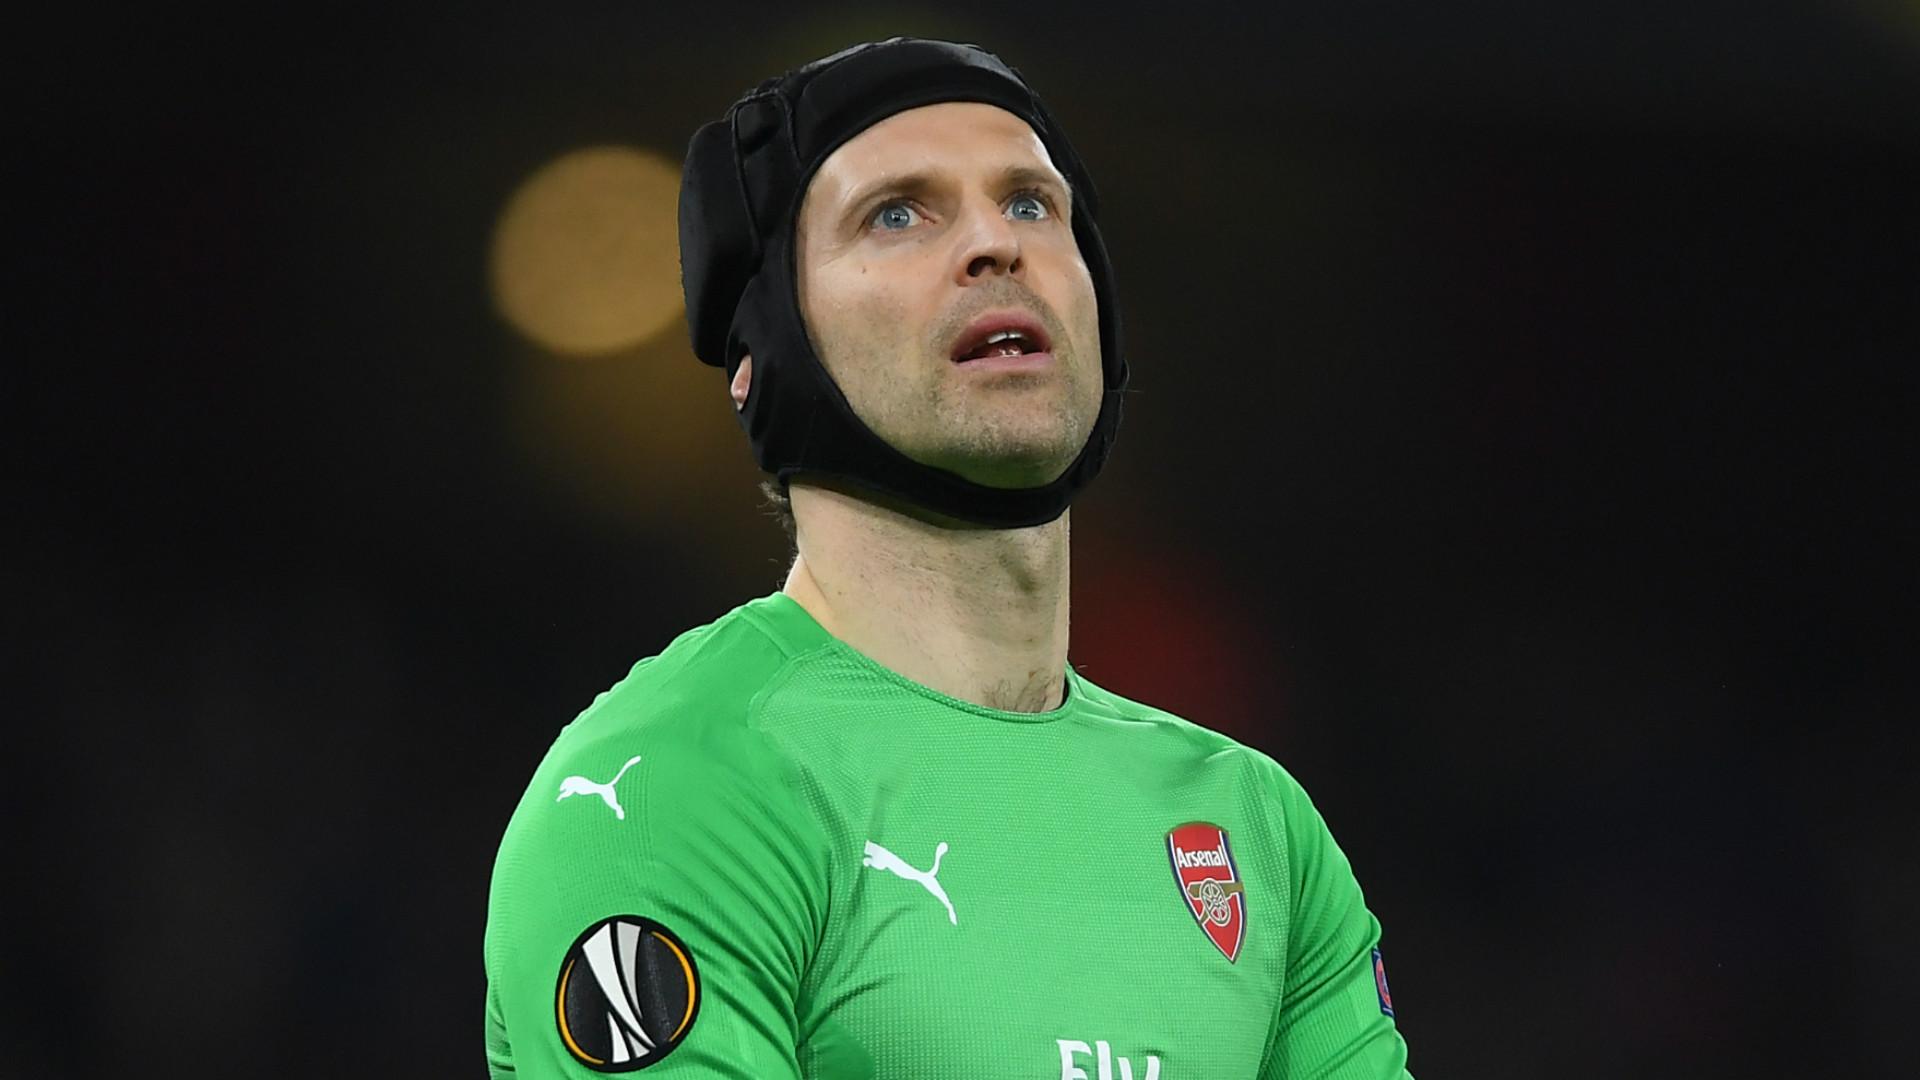 Goalkeeper to goaltender: Peter Cech signs for ice hockey club